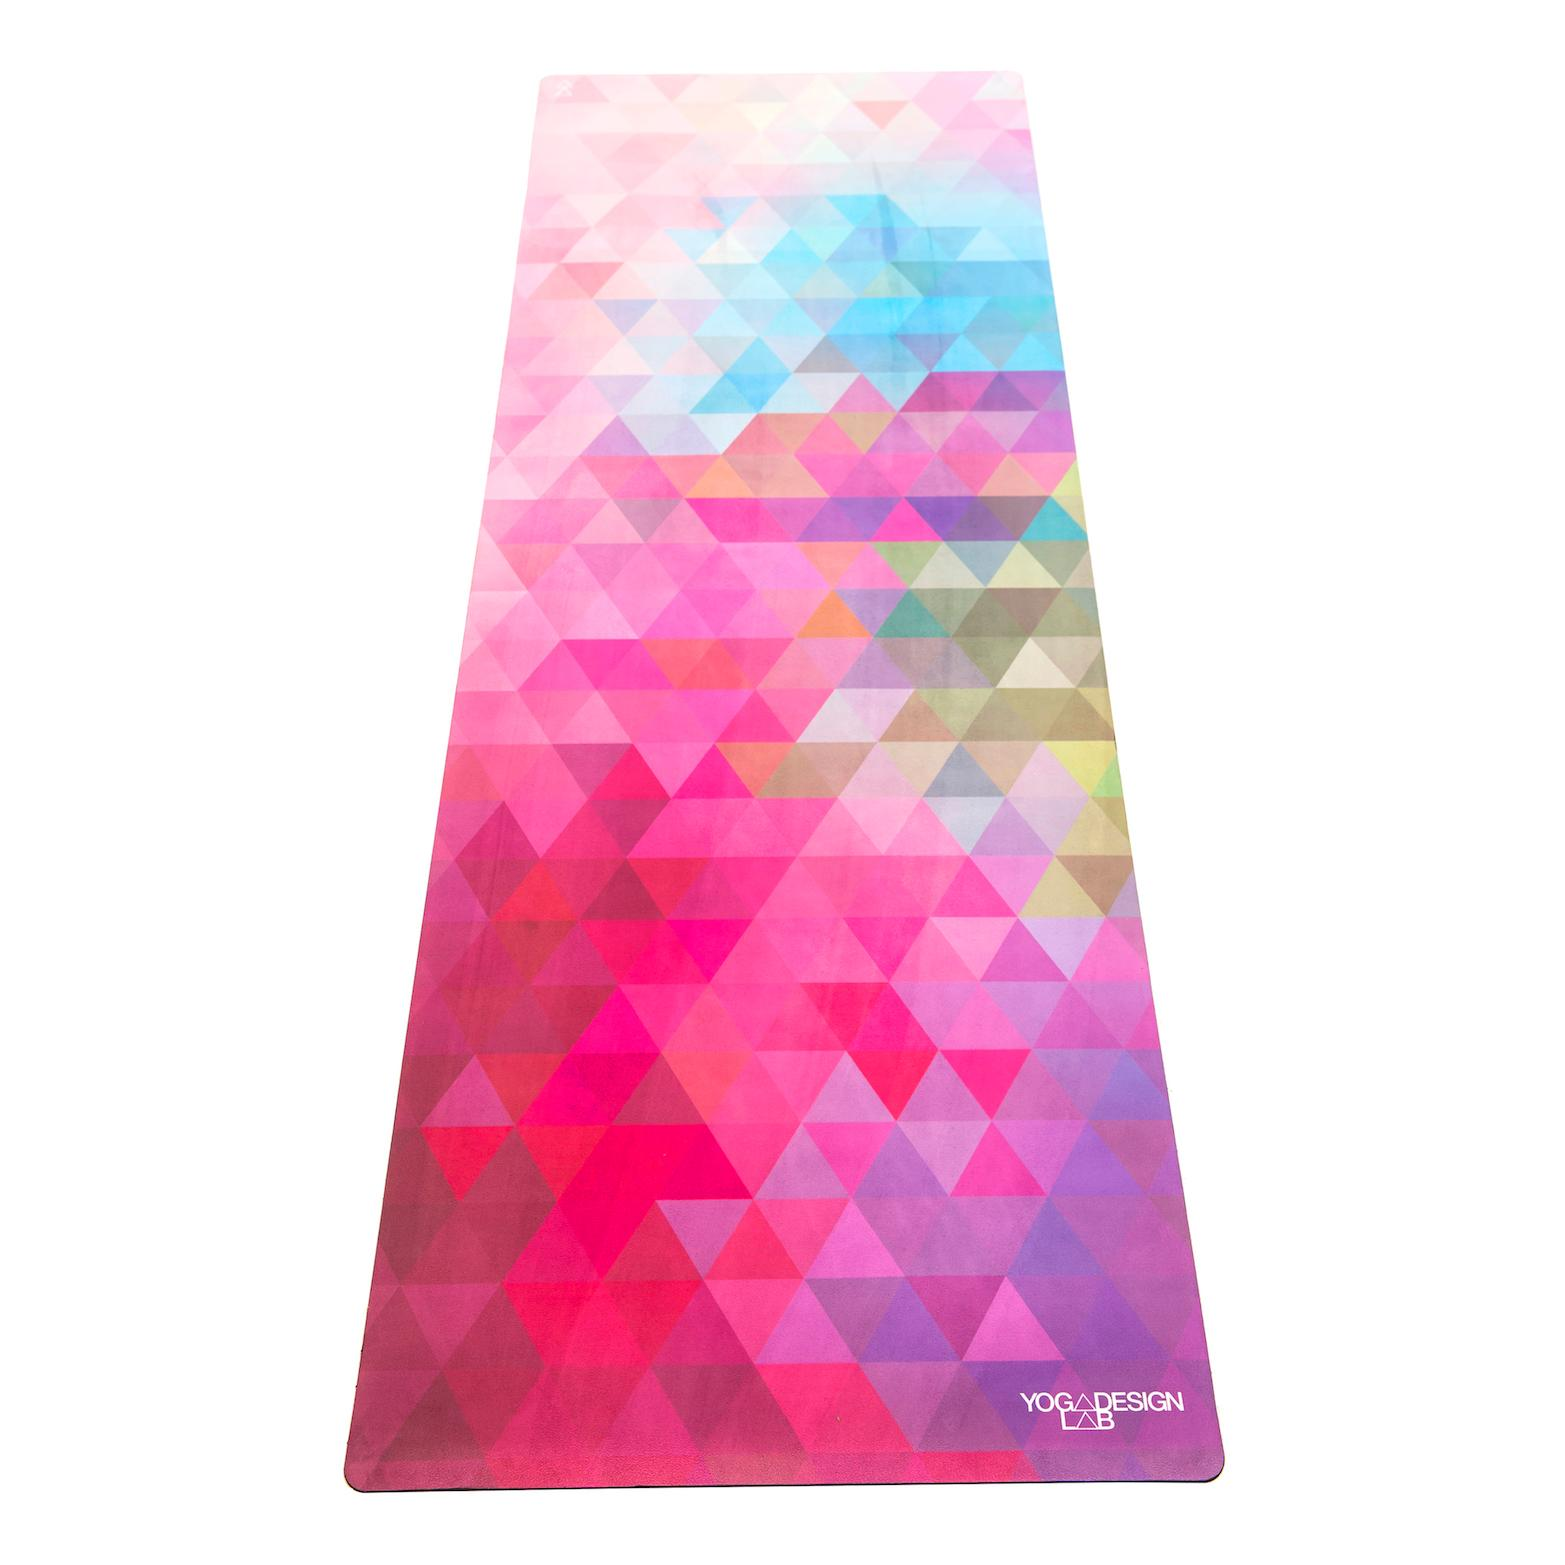 1.0mm Travel Yoga Mat - Tribeca Sand